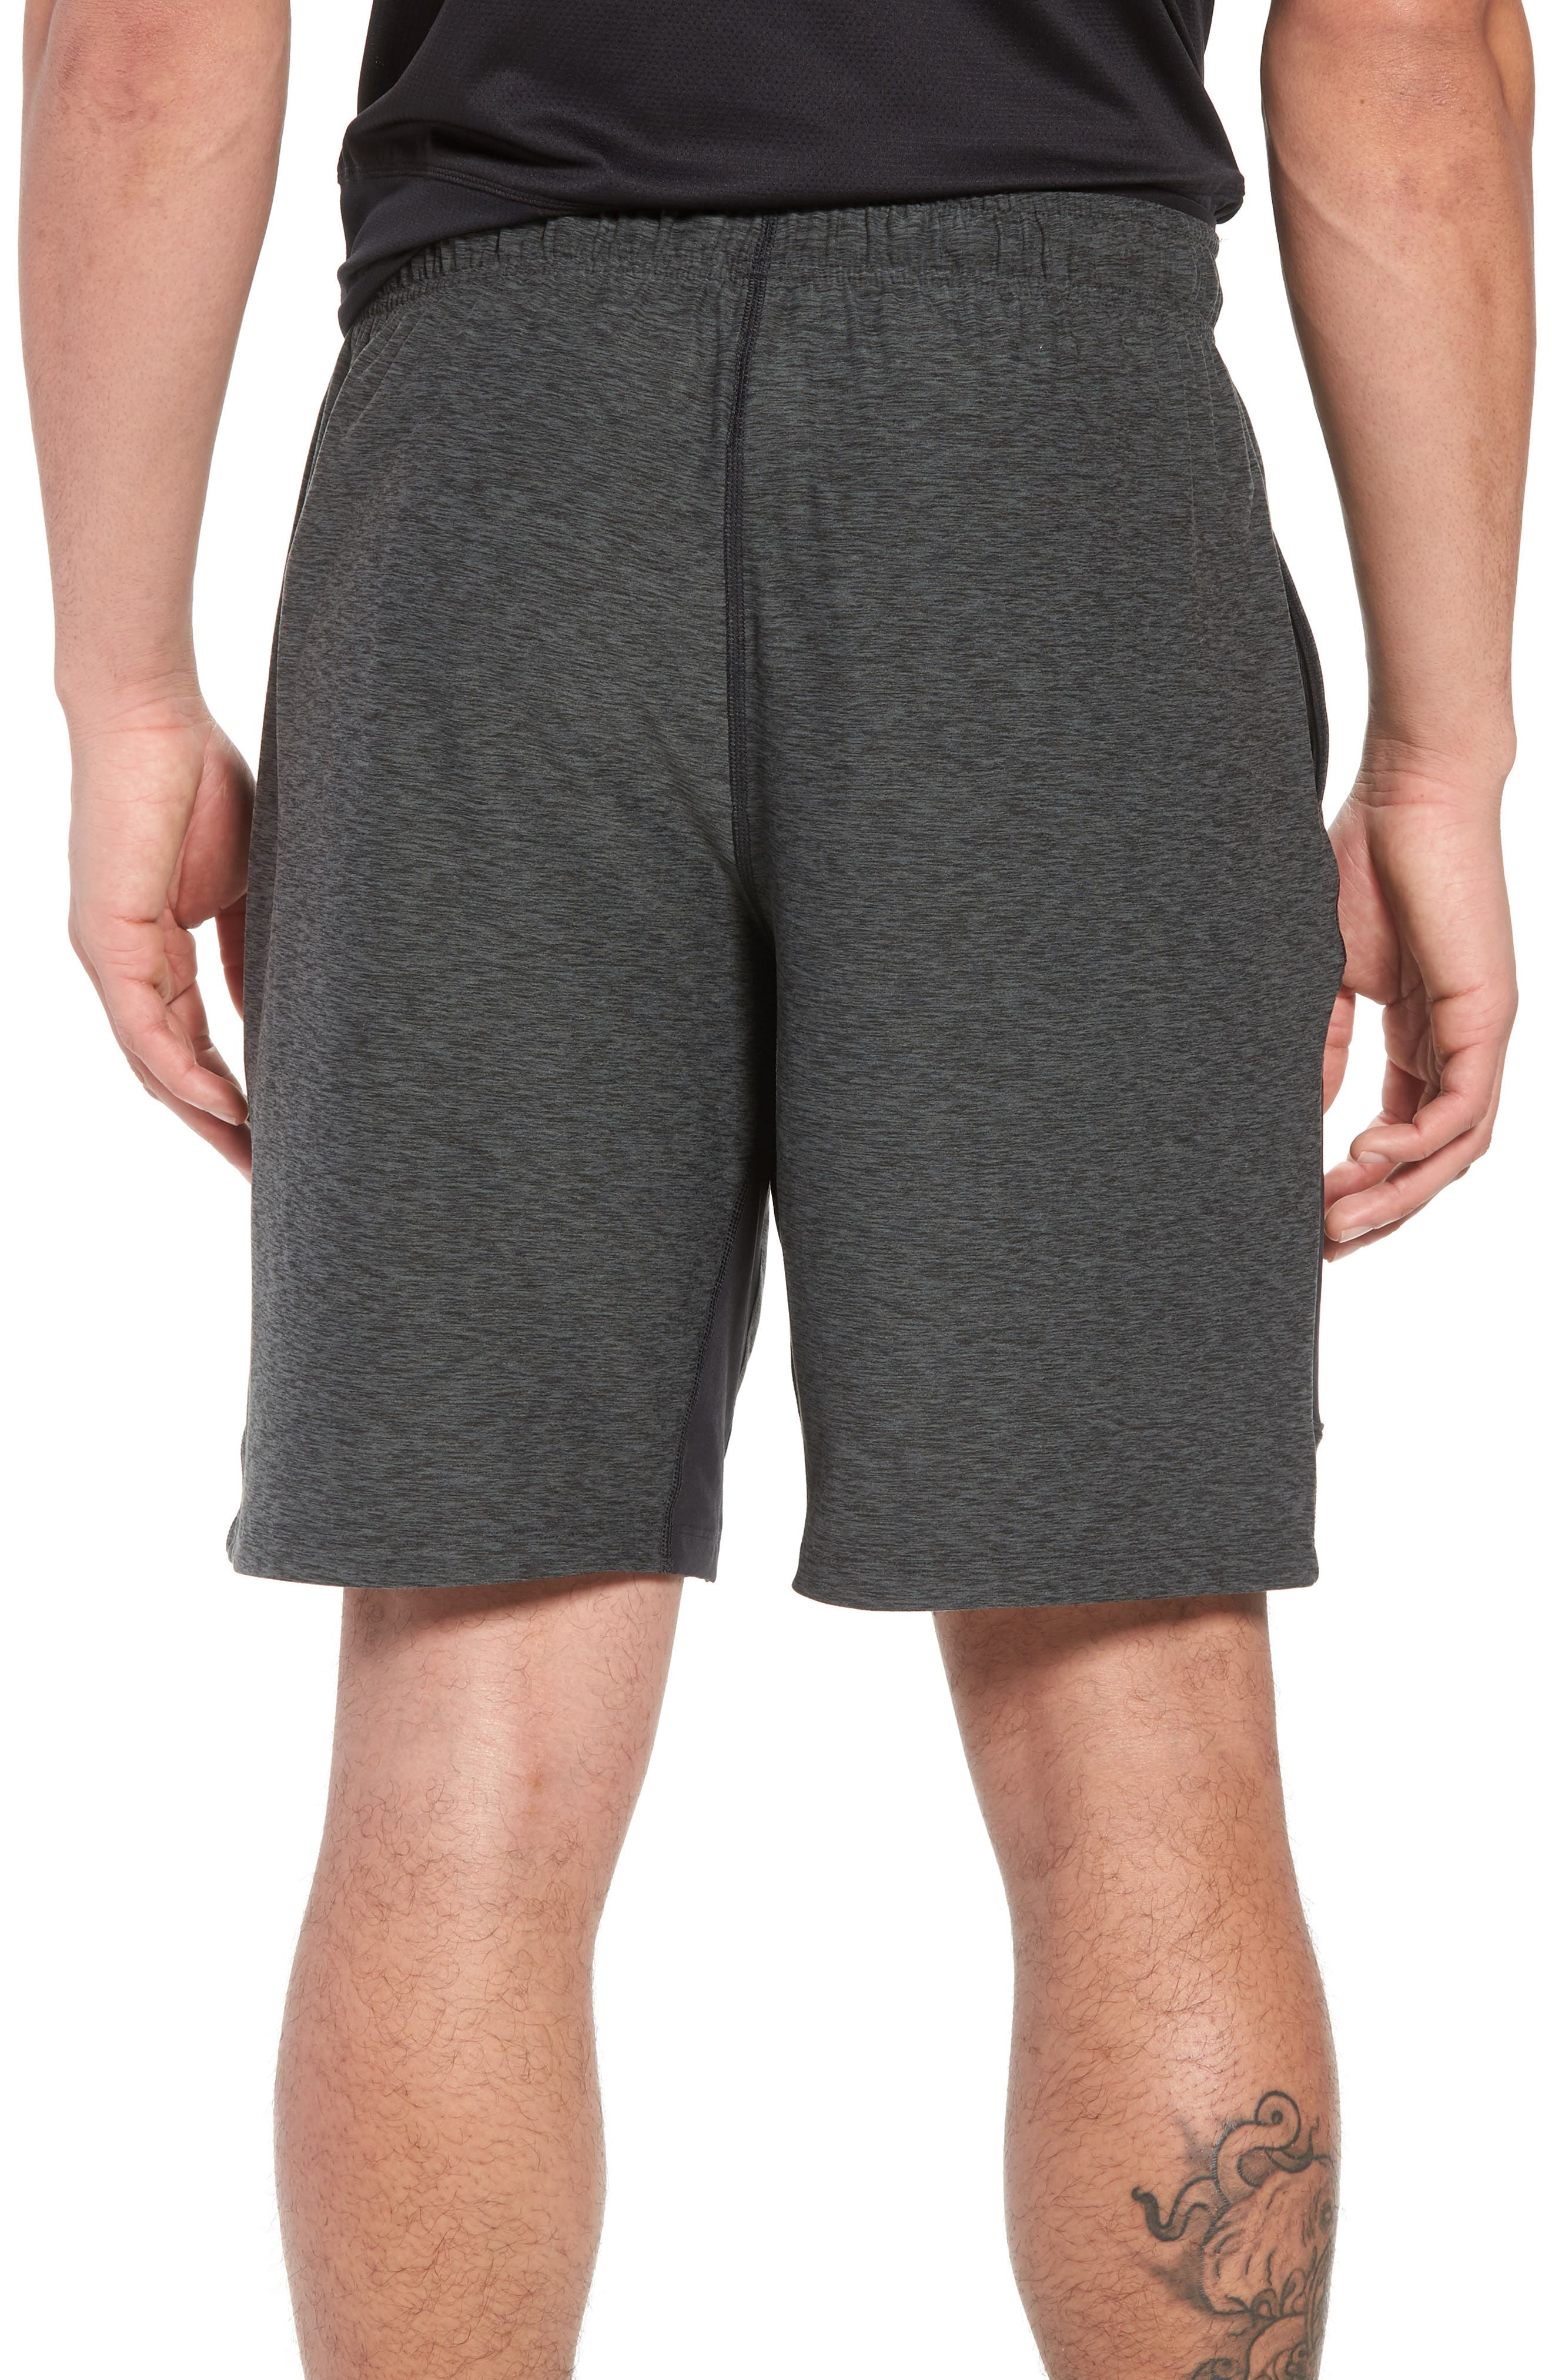 Anticipate Shorts,                             Alternate thumbnail 2, color,                             HEATHER CHARCOAL